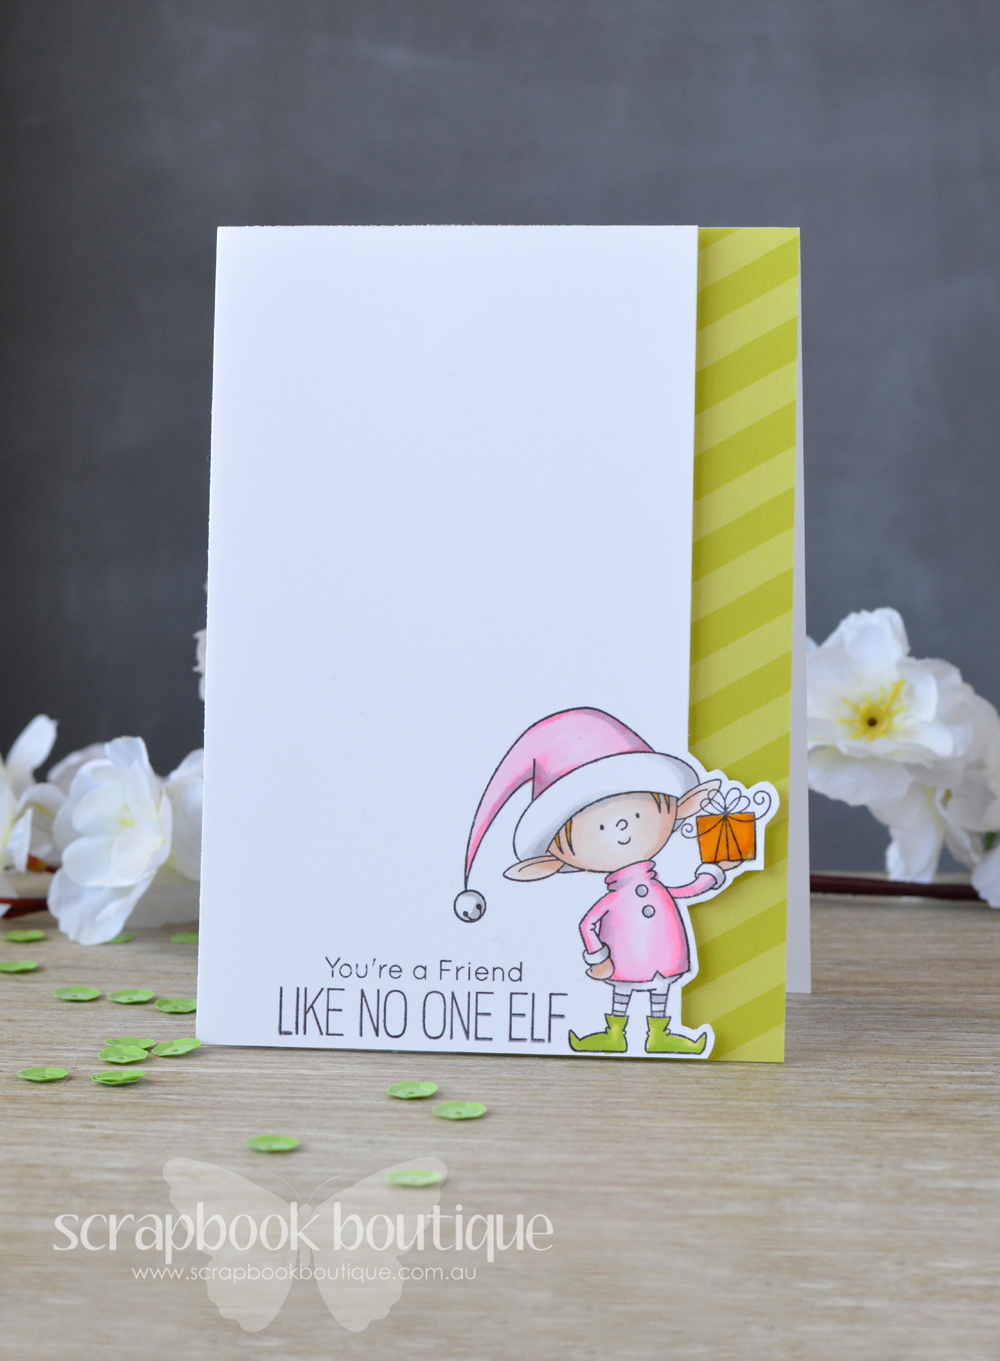 Scrapbook Boutique Using One Stamp Set To Create 6 Different